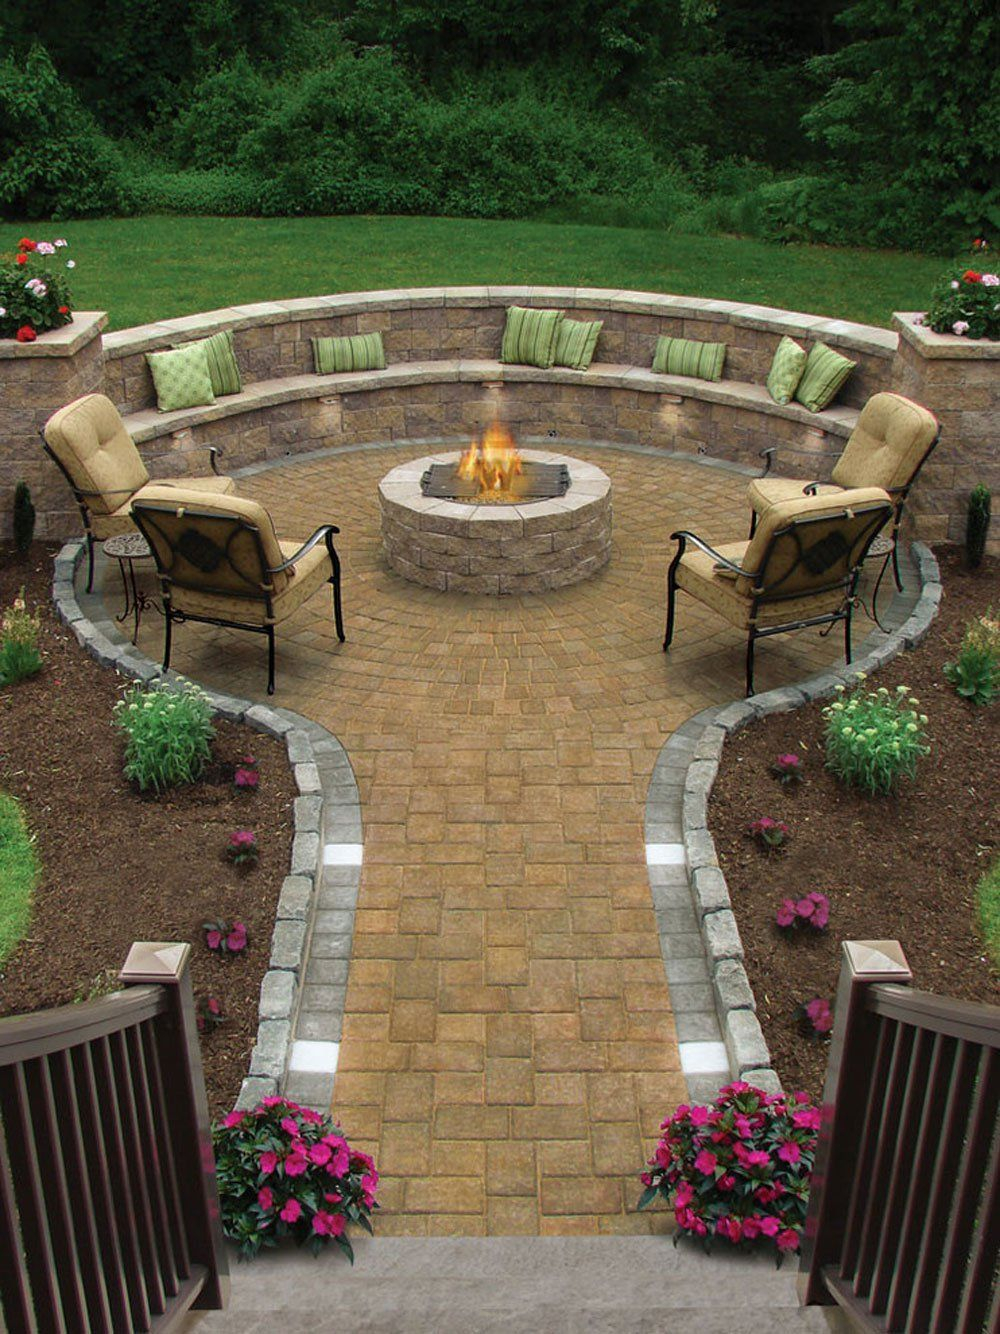 17 Of The Most Amazing Seating Area Around The Fire Pit Ever with regard to sizing 1000 X 1334